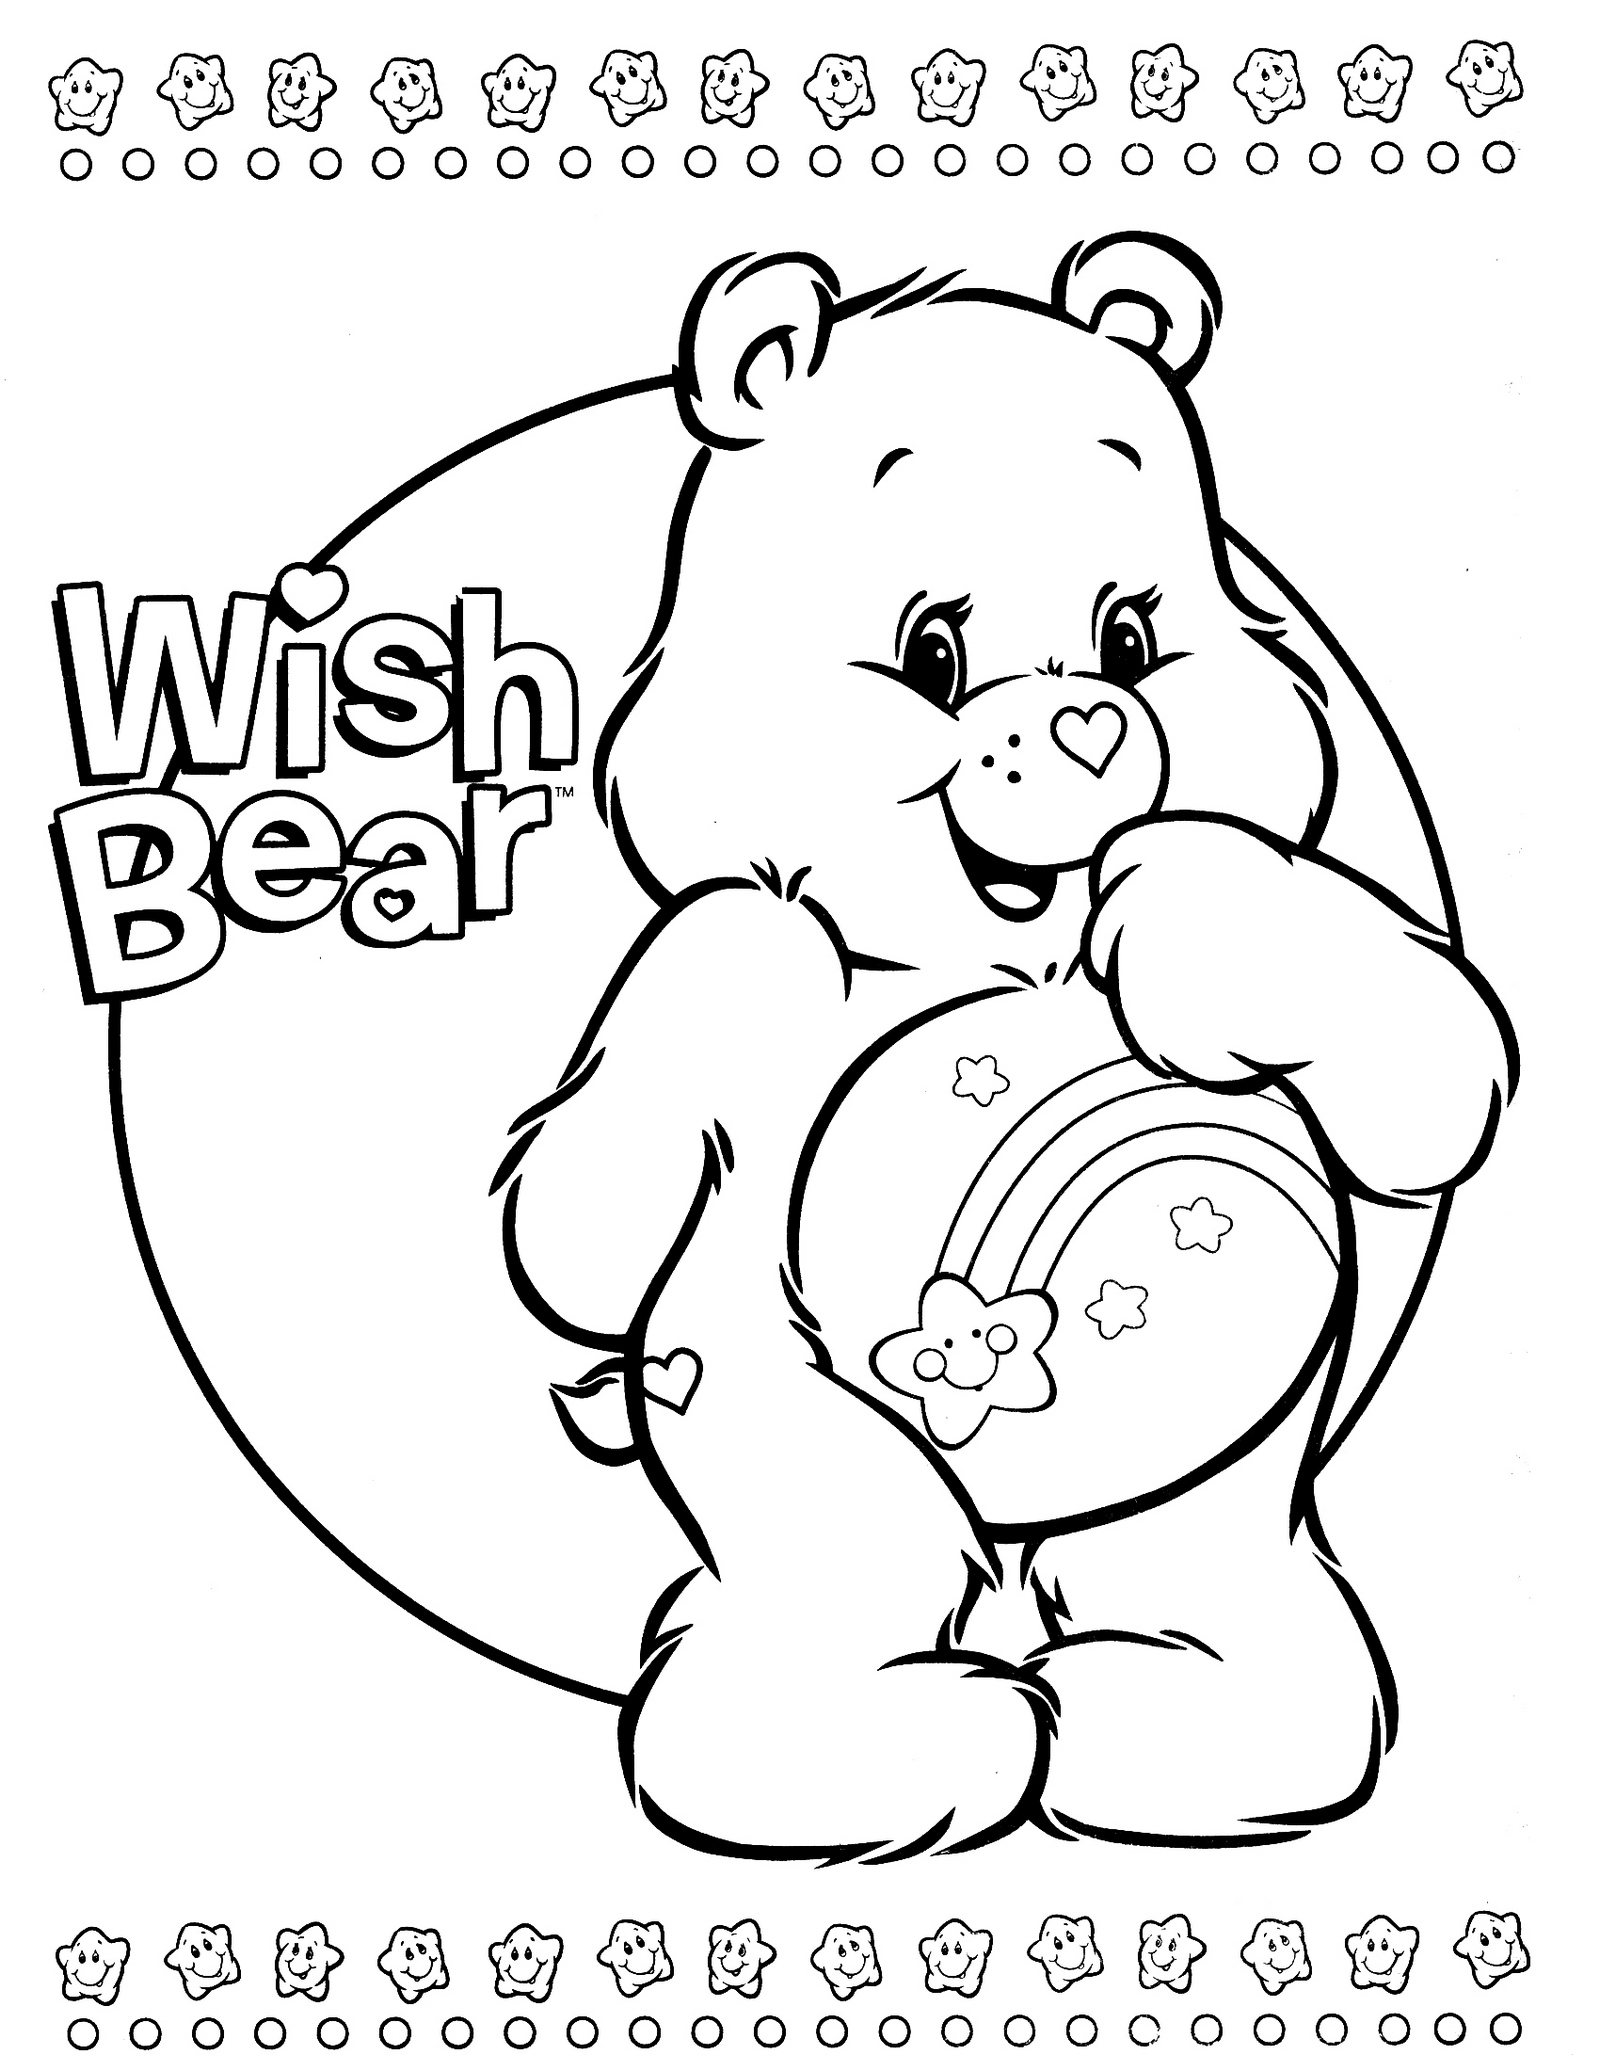 Wish Bear From Care Bears Coloring Book